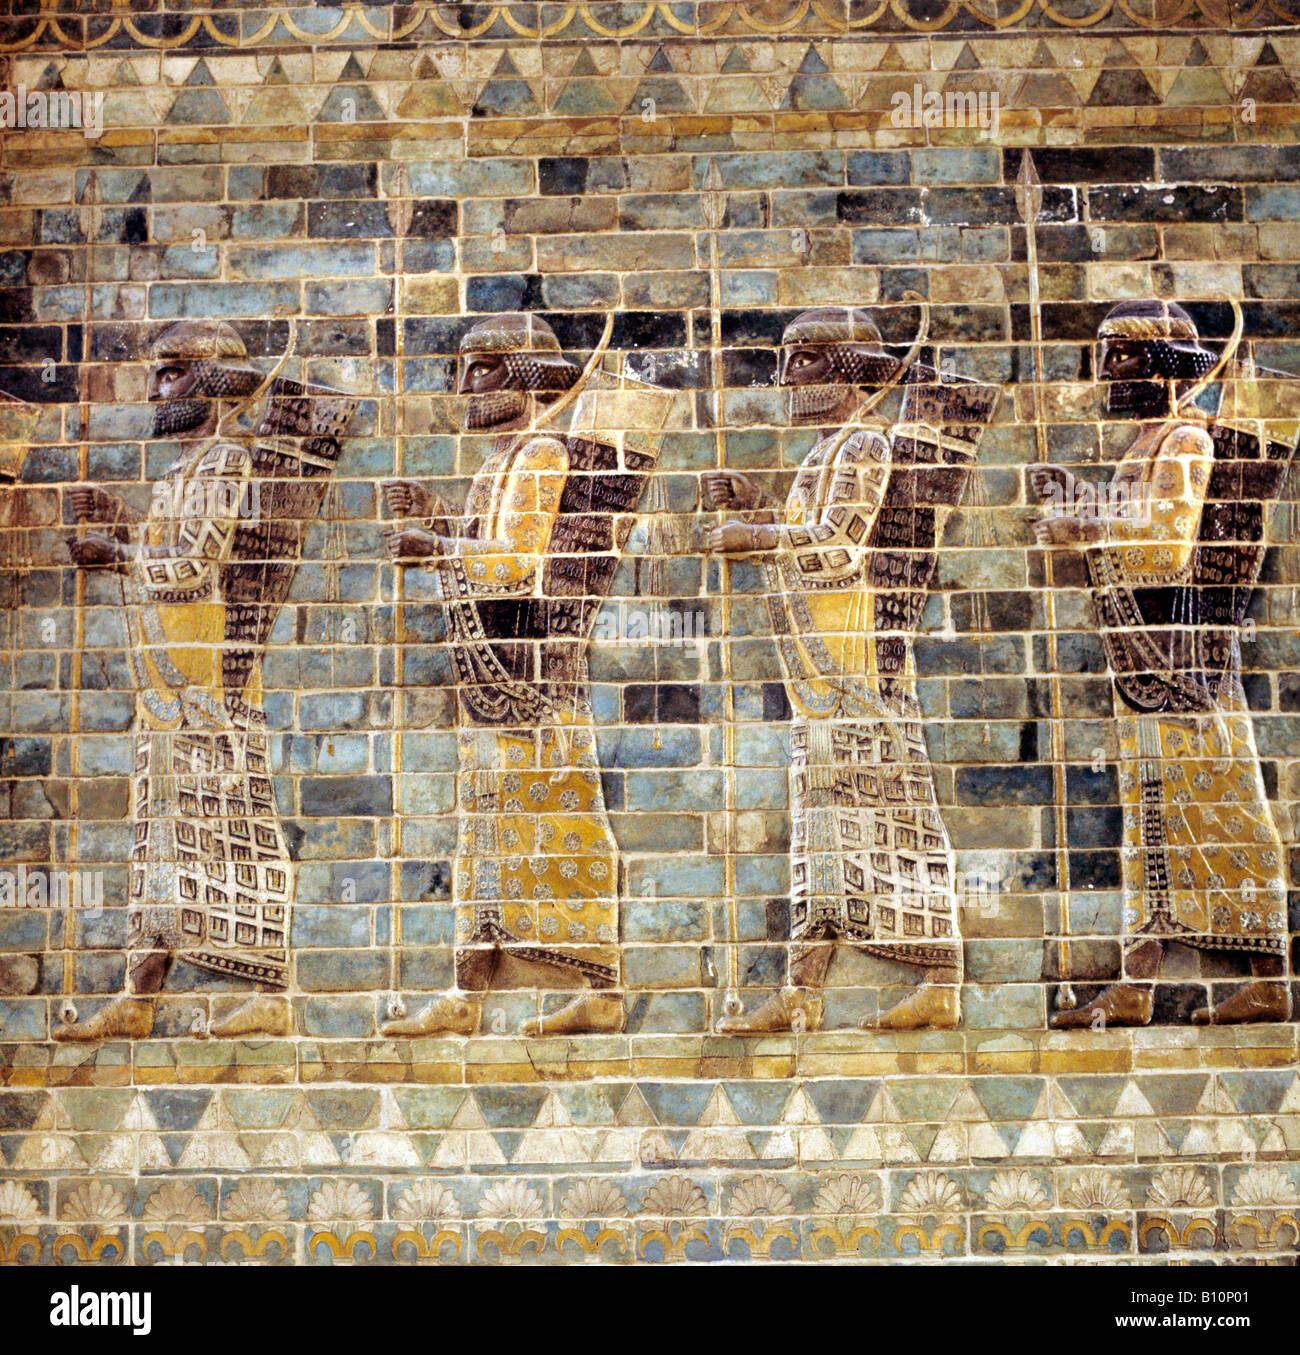 Susa Archers frieze from the Palace of Darius 522 586 BC Persian Empire IRAN - Stock Image